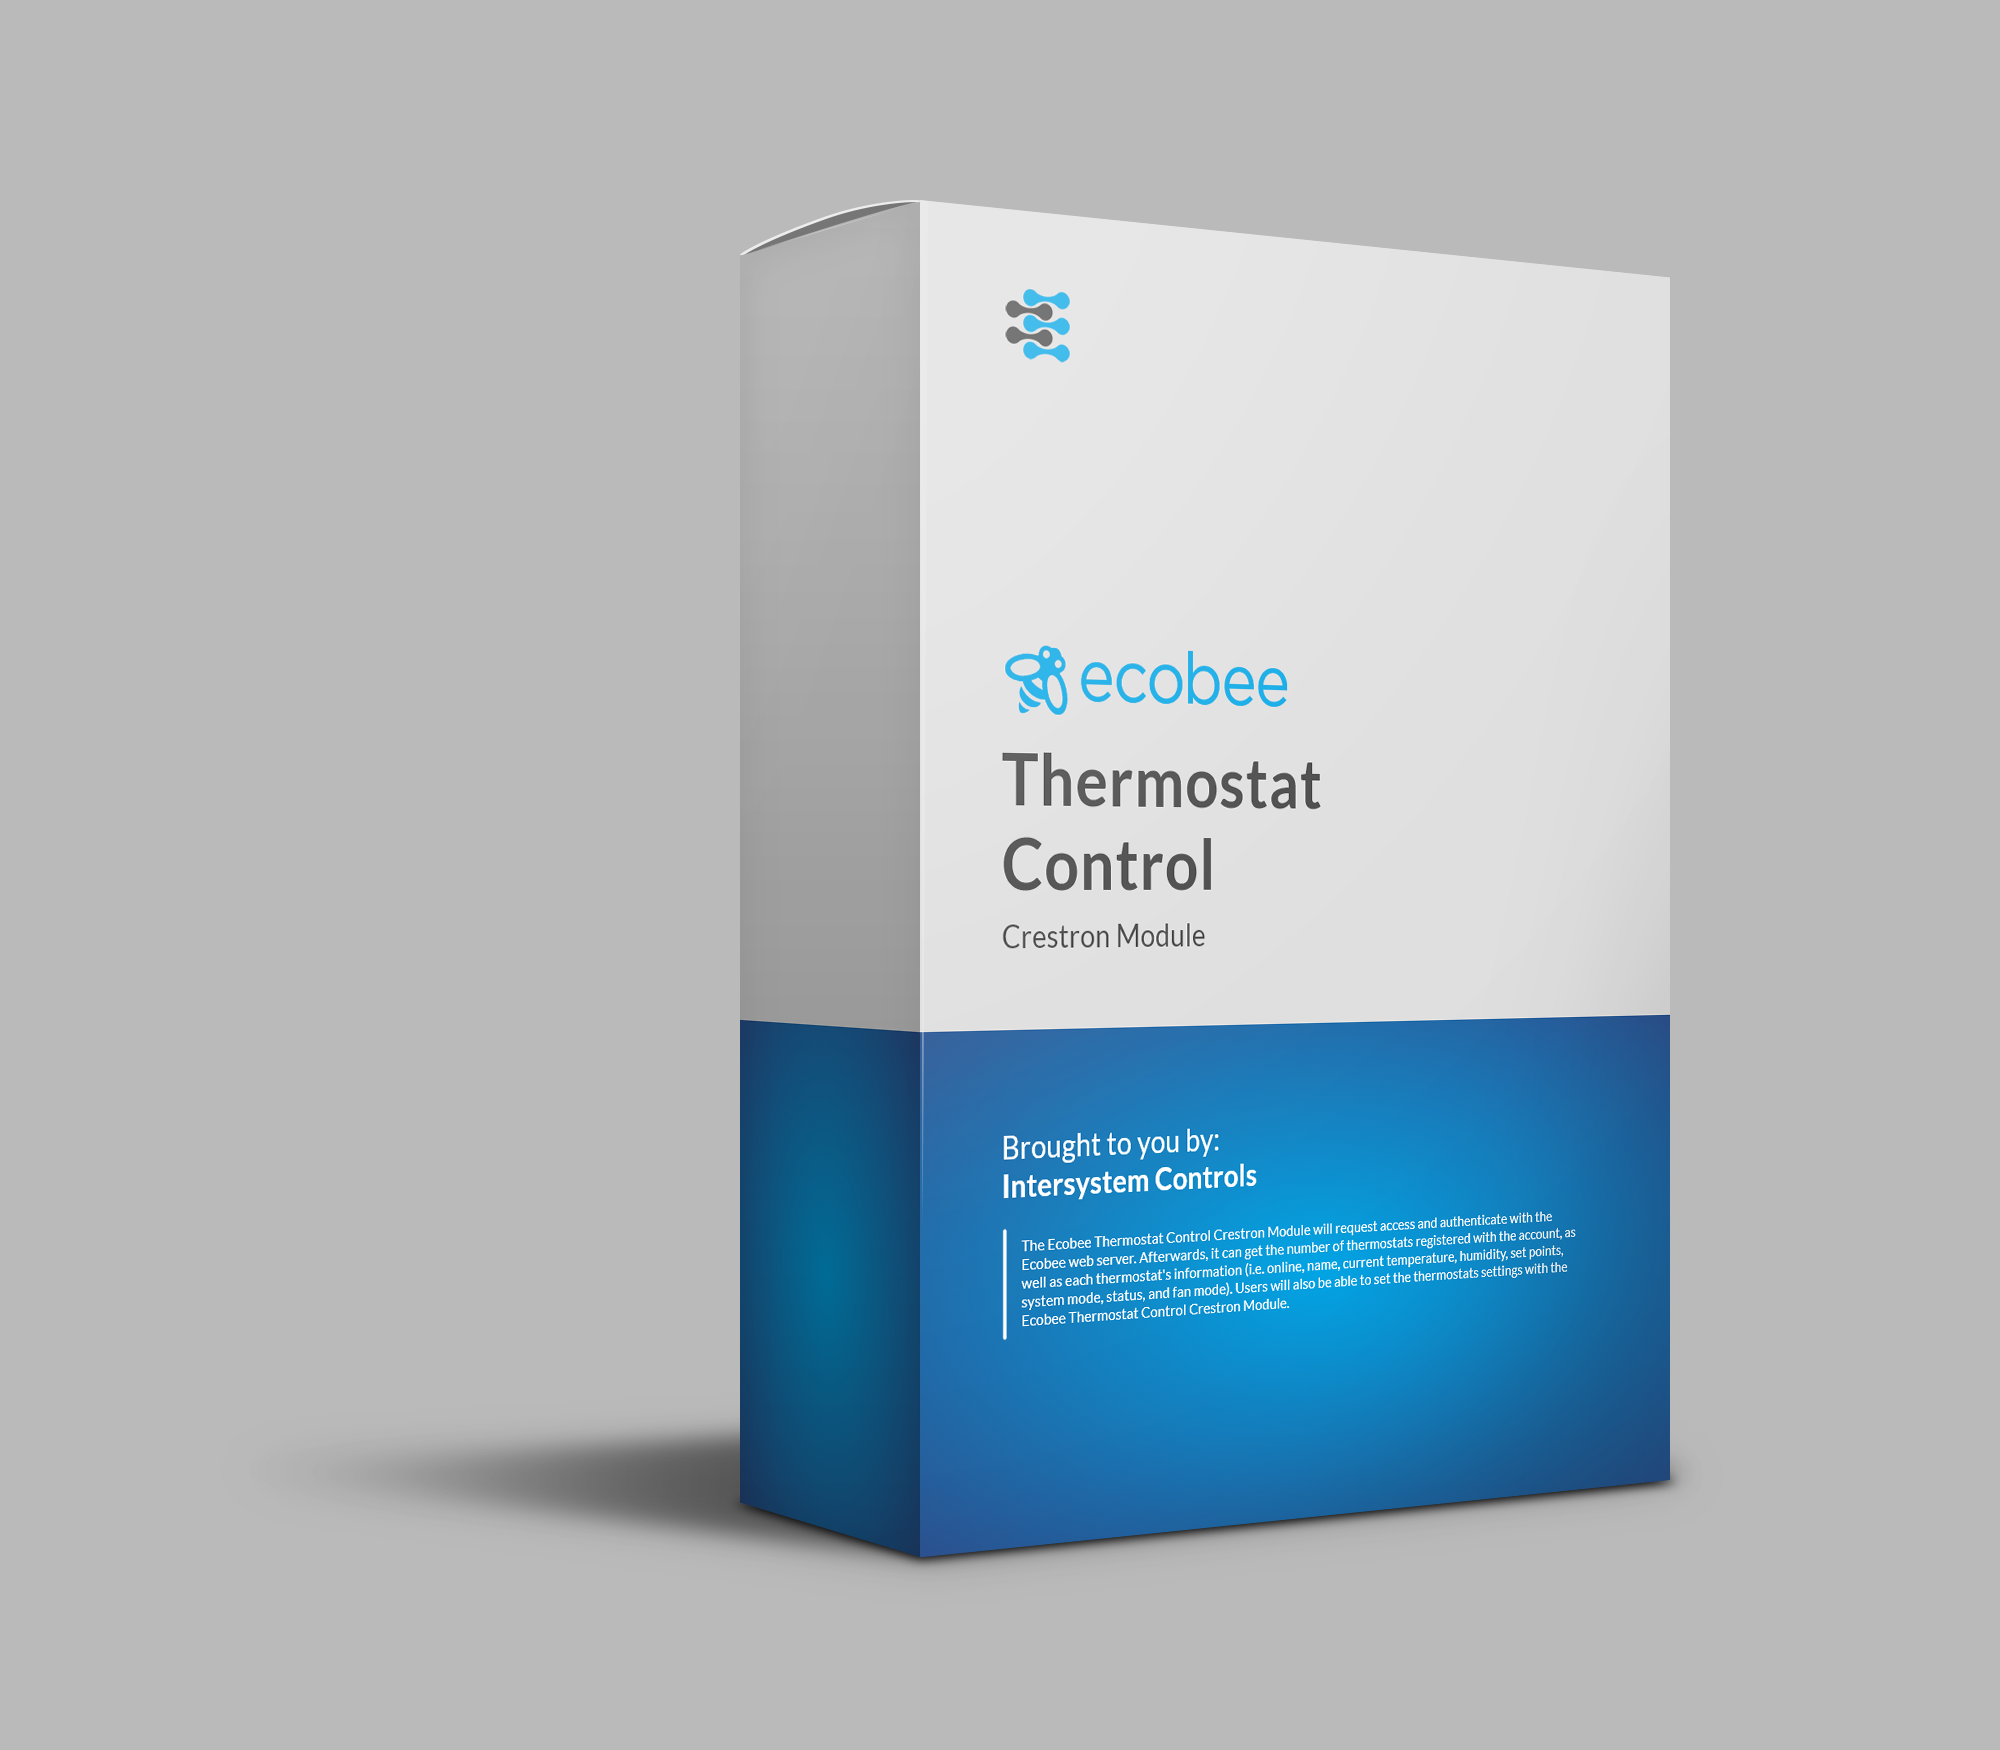 A product image of a white and blue box for the Ecobee Thermostat Crestron Control Module.